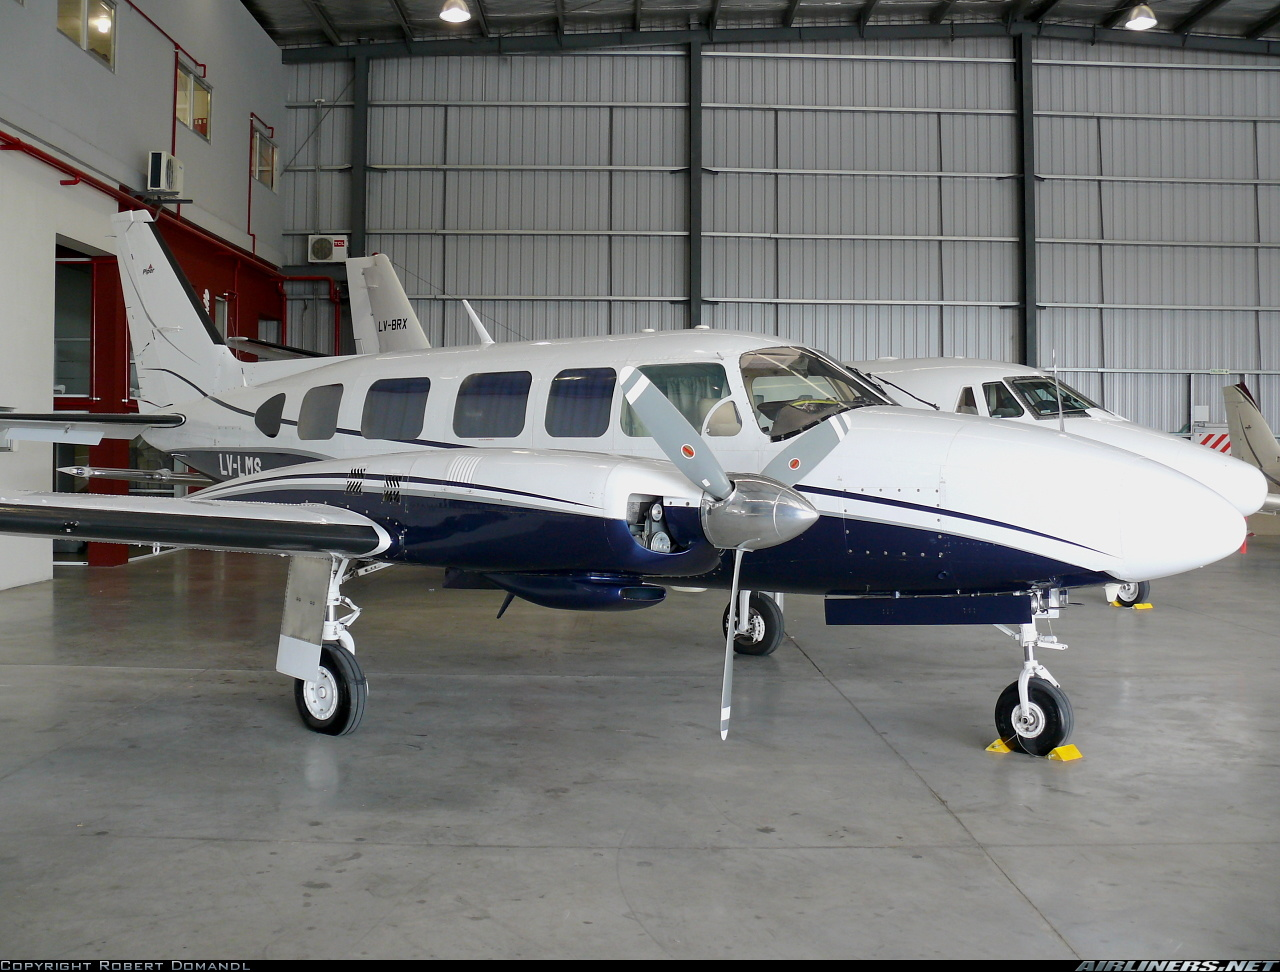 Piper PA-31-350 in Hangar.jpg